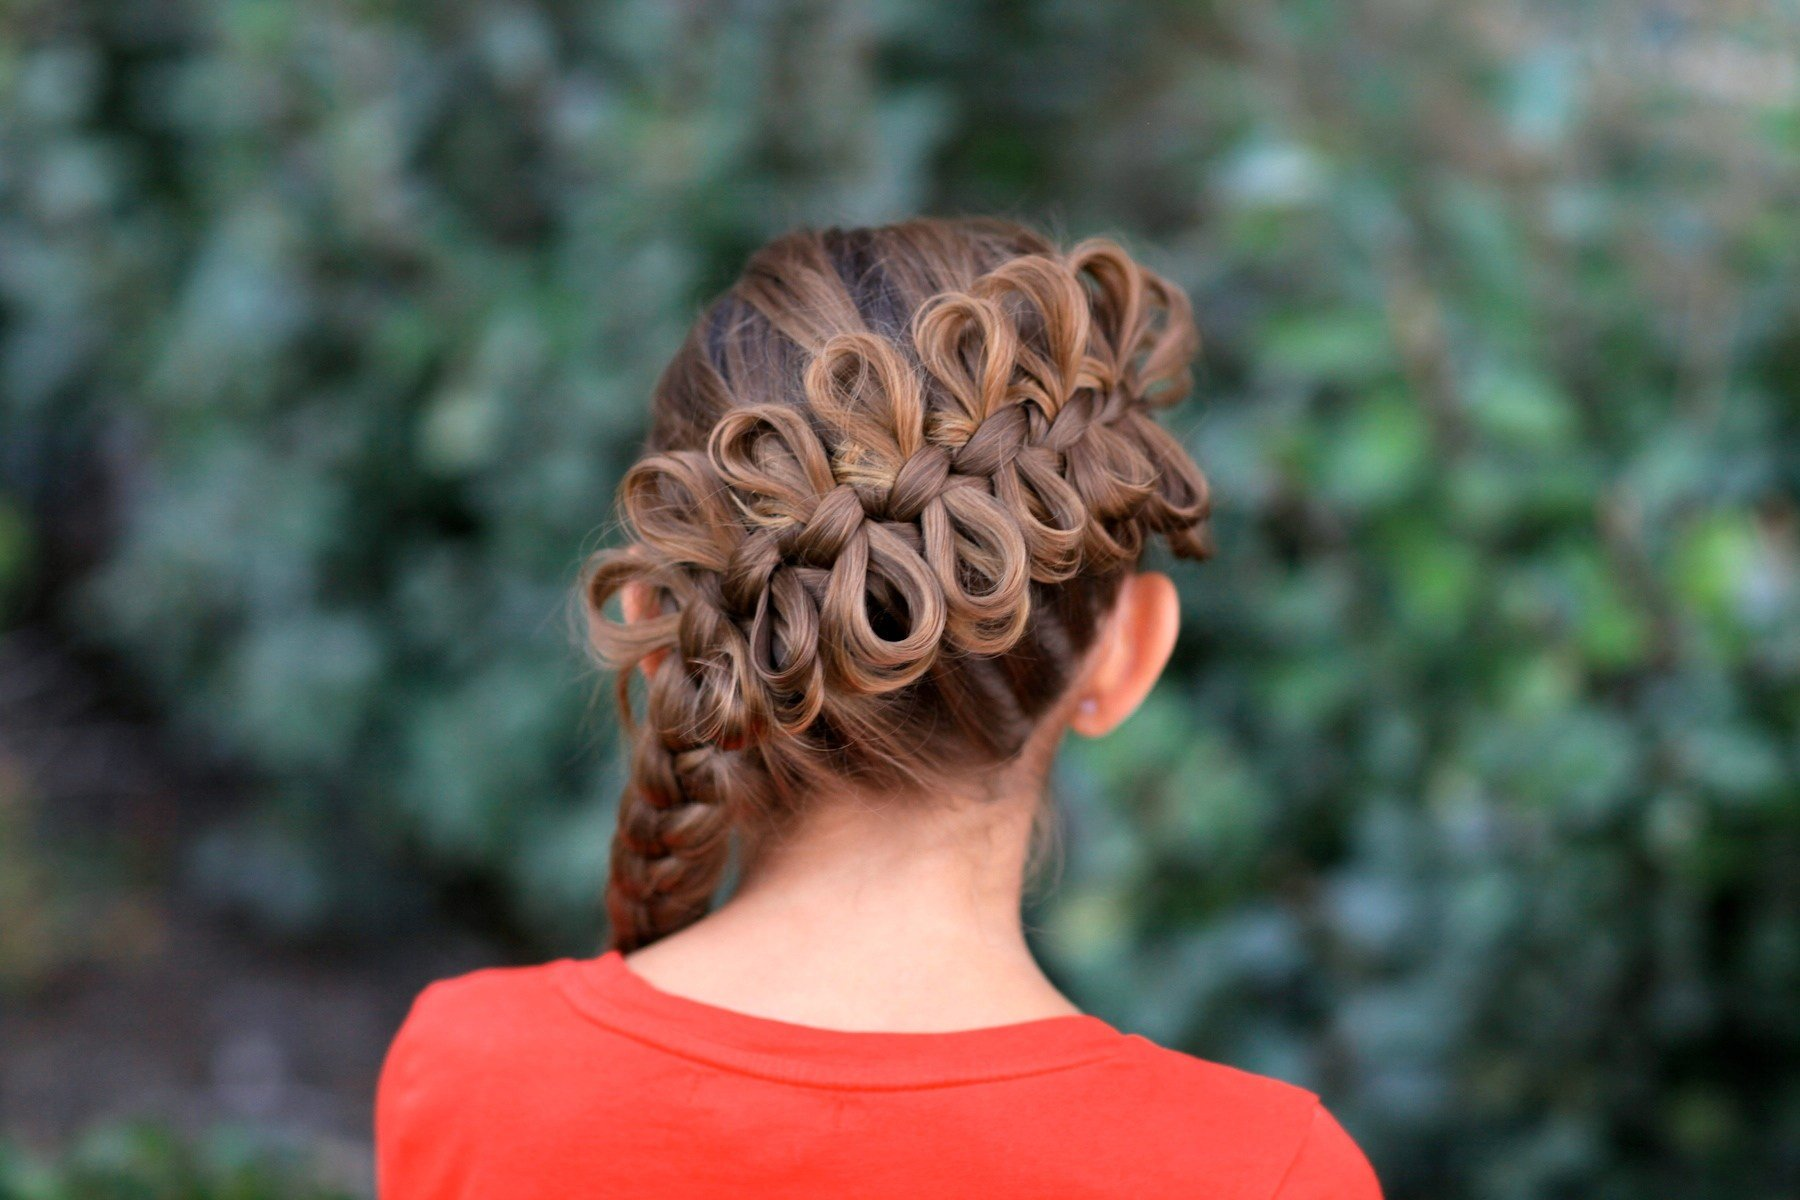 The Best Diagonal Bow Braid Popular Hairstyles Cute Girls Pictures